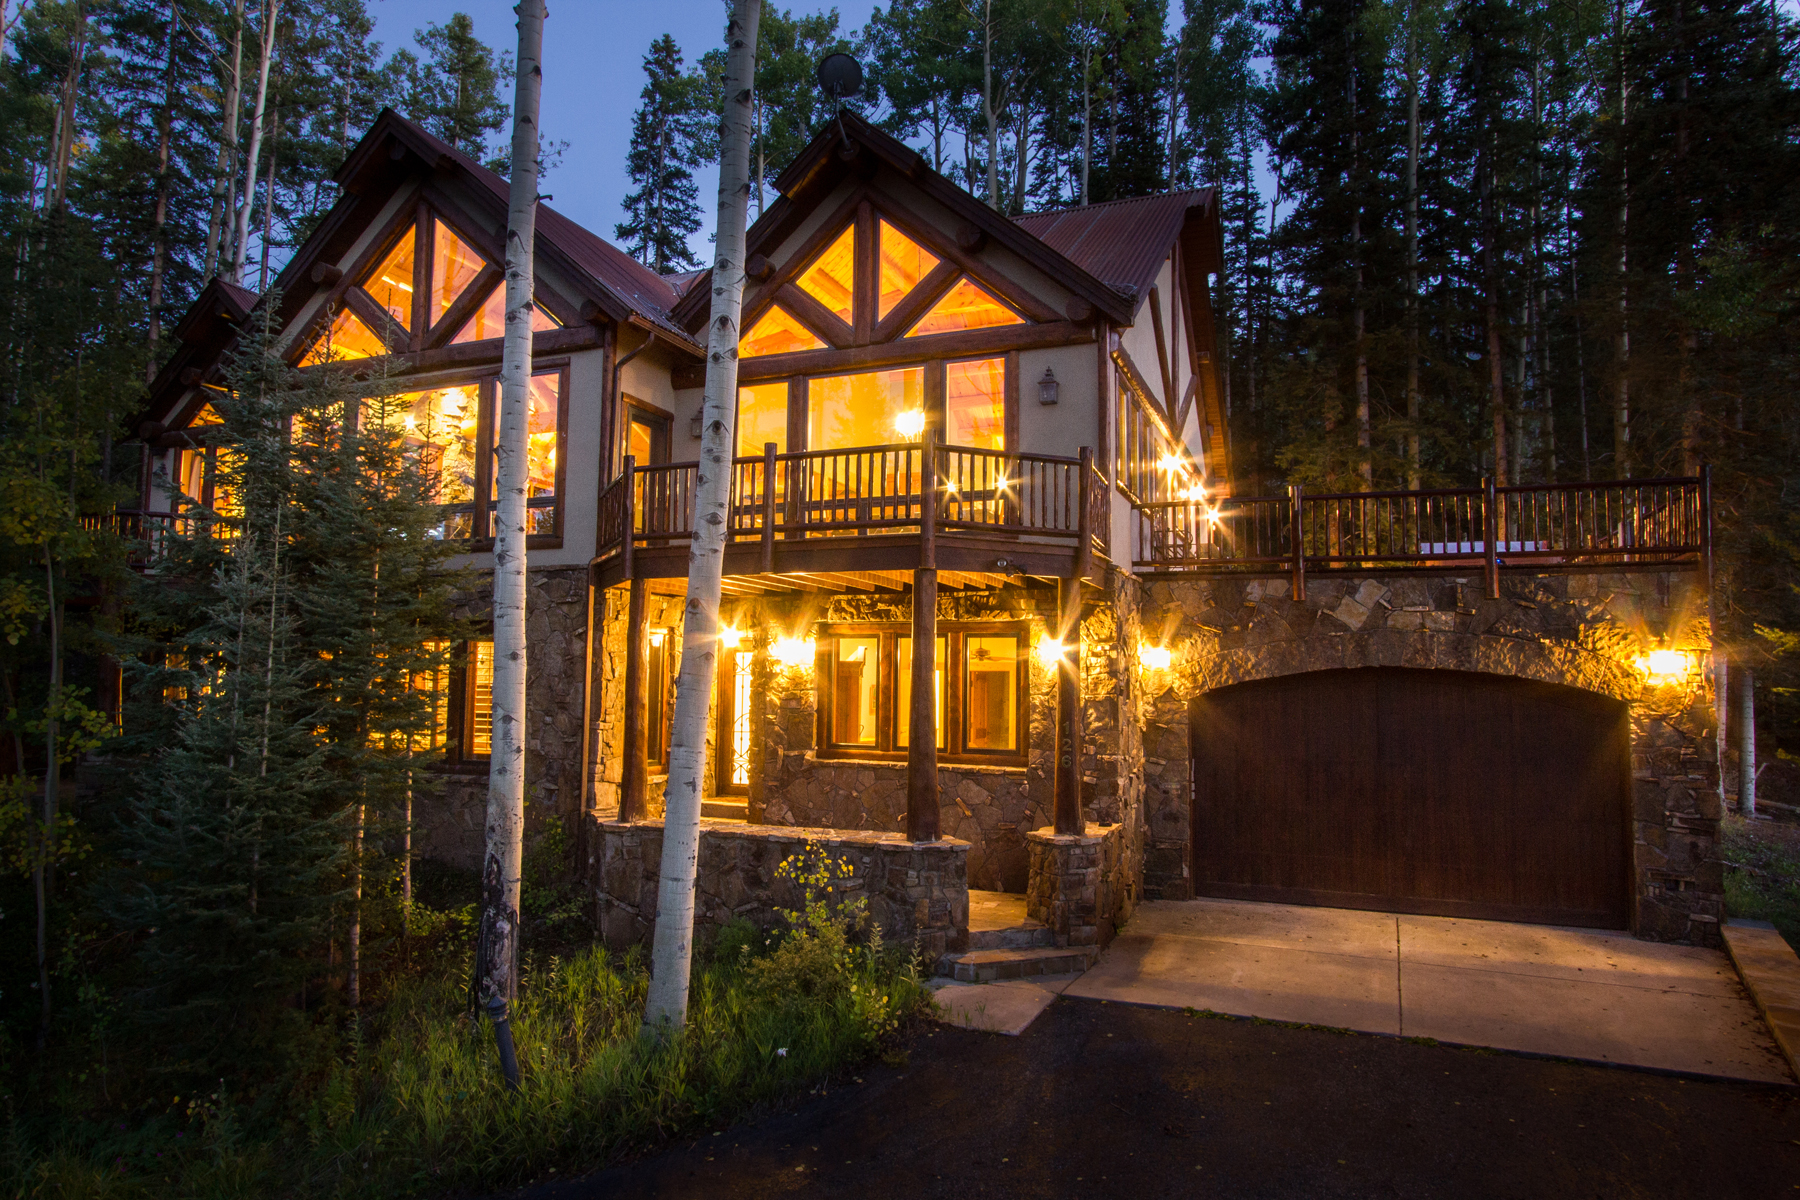 Single Family Home for Sale at 126 Polecat Lane Mountain Village, Telluride, Colorado, 81435 United States